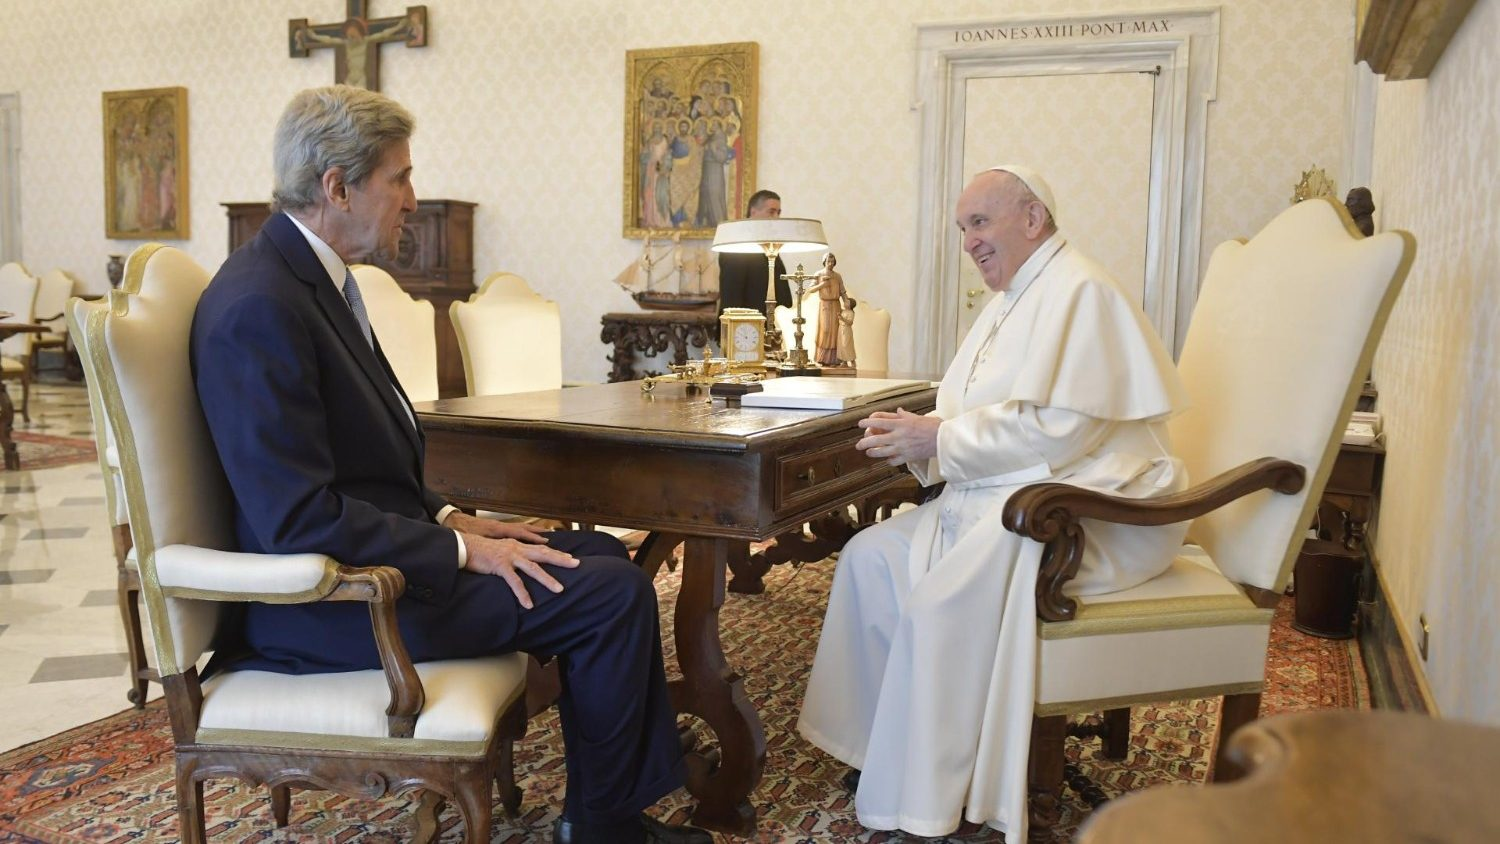 Kerry: The climate crisis The Pope's vote is more important than ever